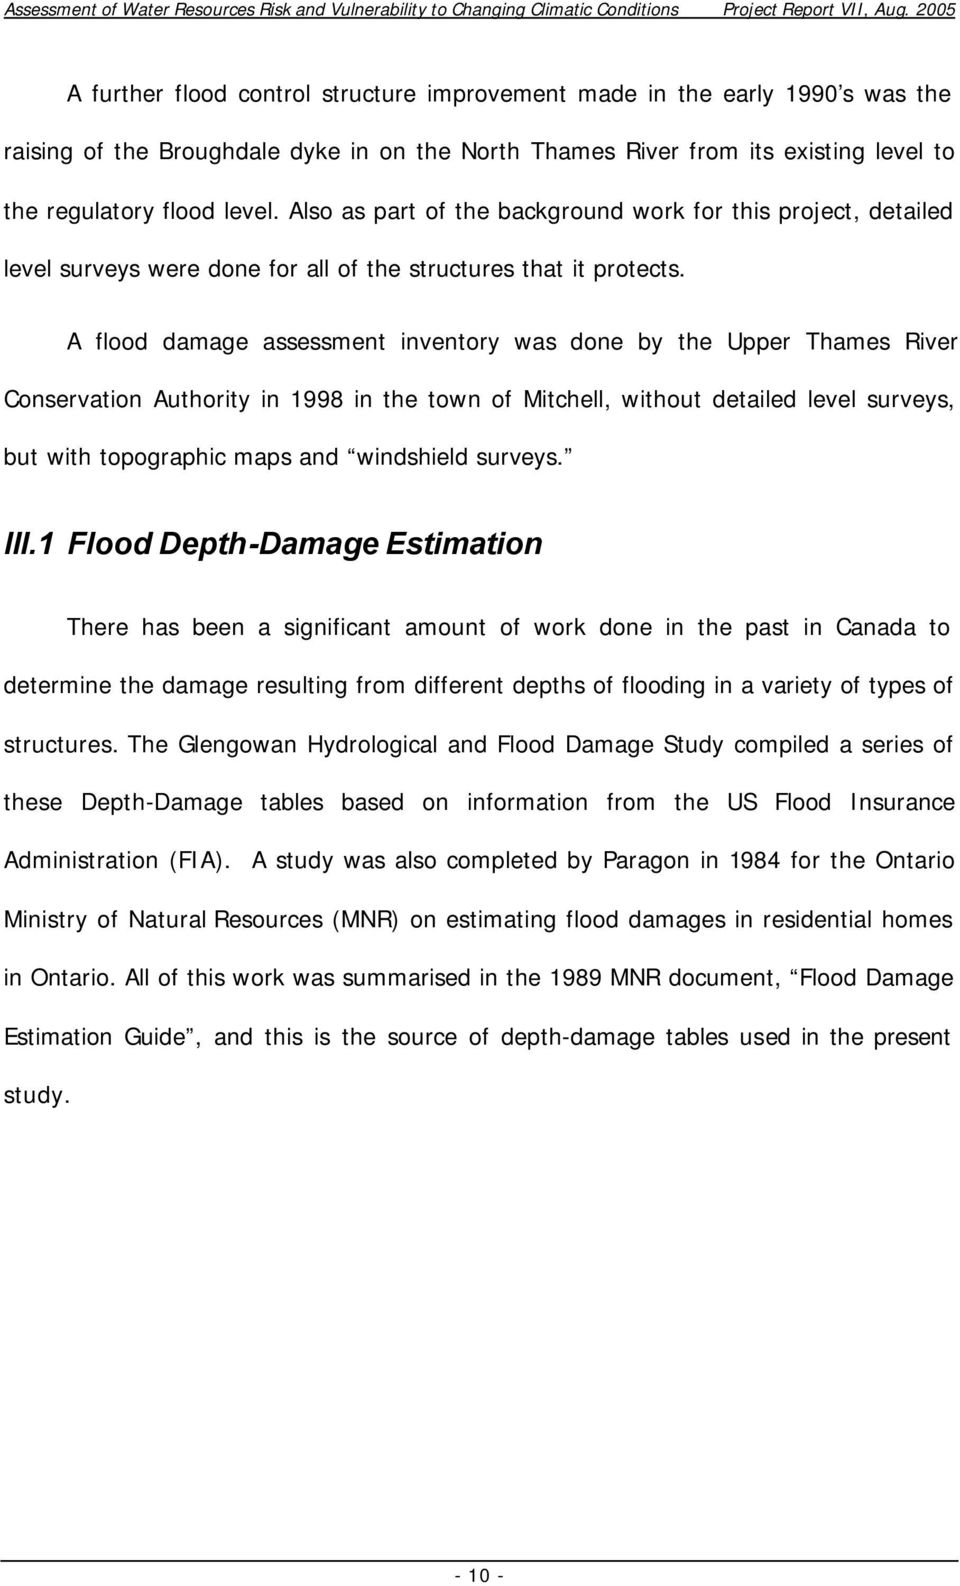 A flood damage assessment inventory was done by the Upper Thames River Conservation Authority in 1998 in the town of Mitchell, without detailed level surveys, but with topographic maps and windshield